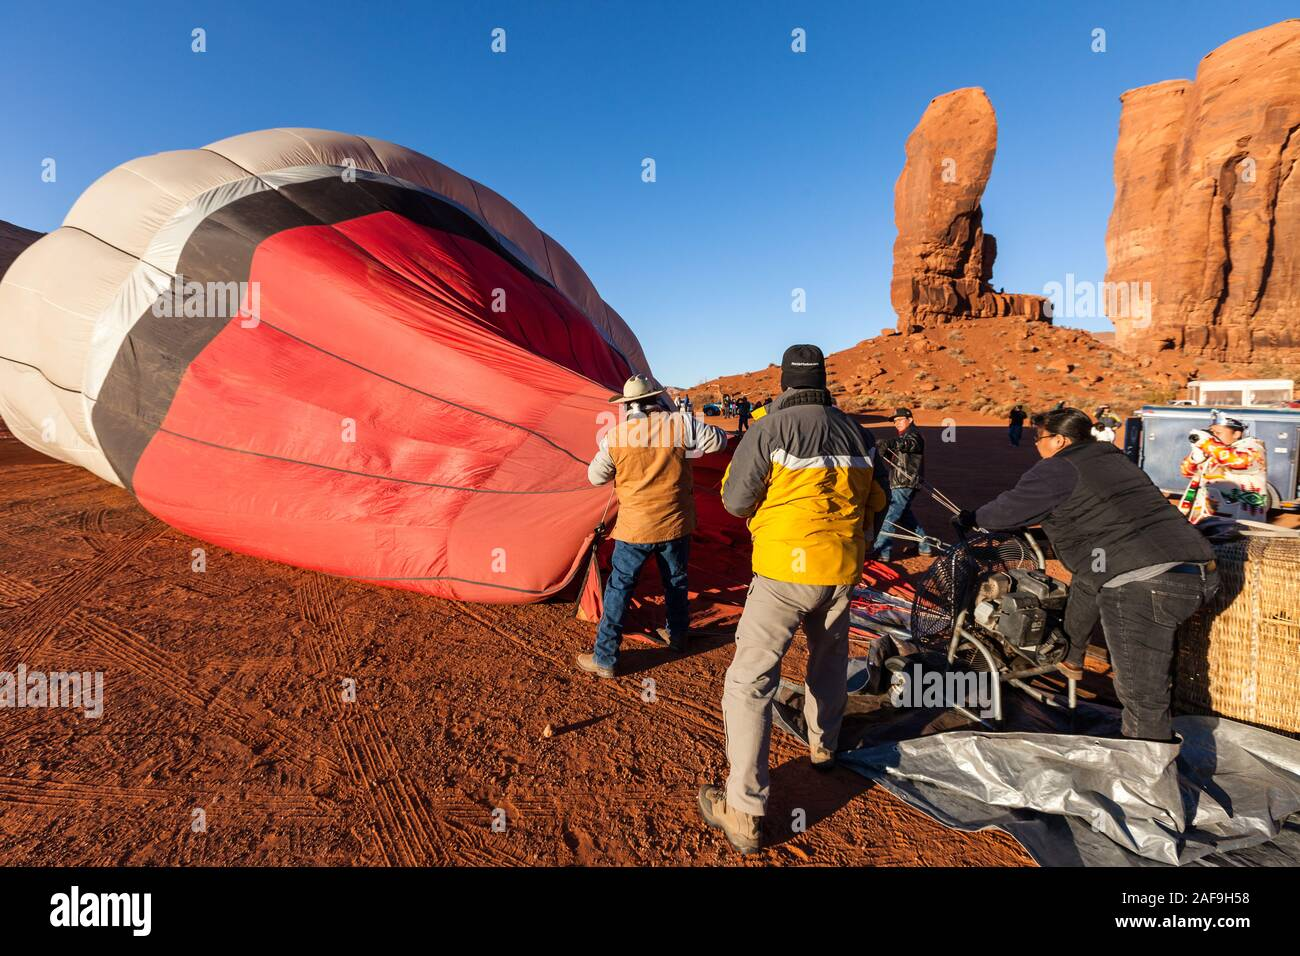 A team inflates a hot balloon in preparation for launch in the Monument Valley Navajo Tribal Park in Arizona.  In the background is the rock formation Stock Photo